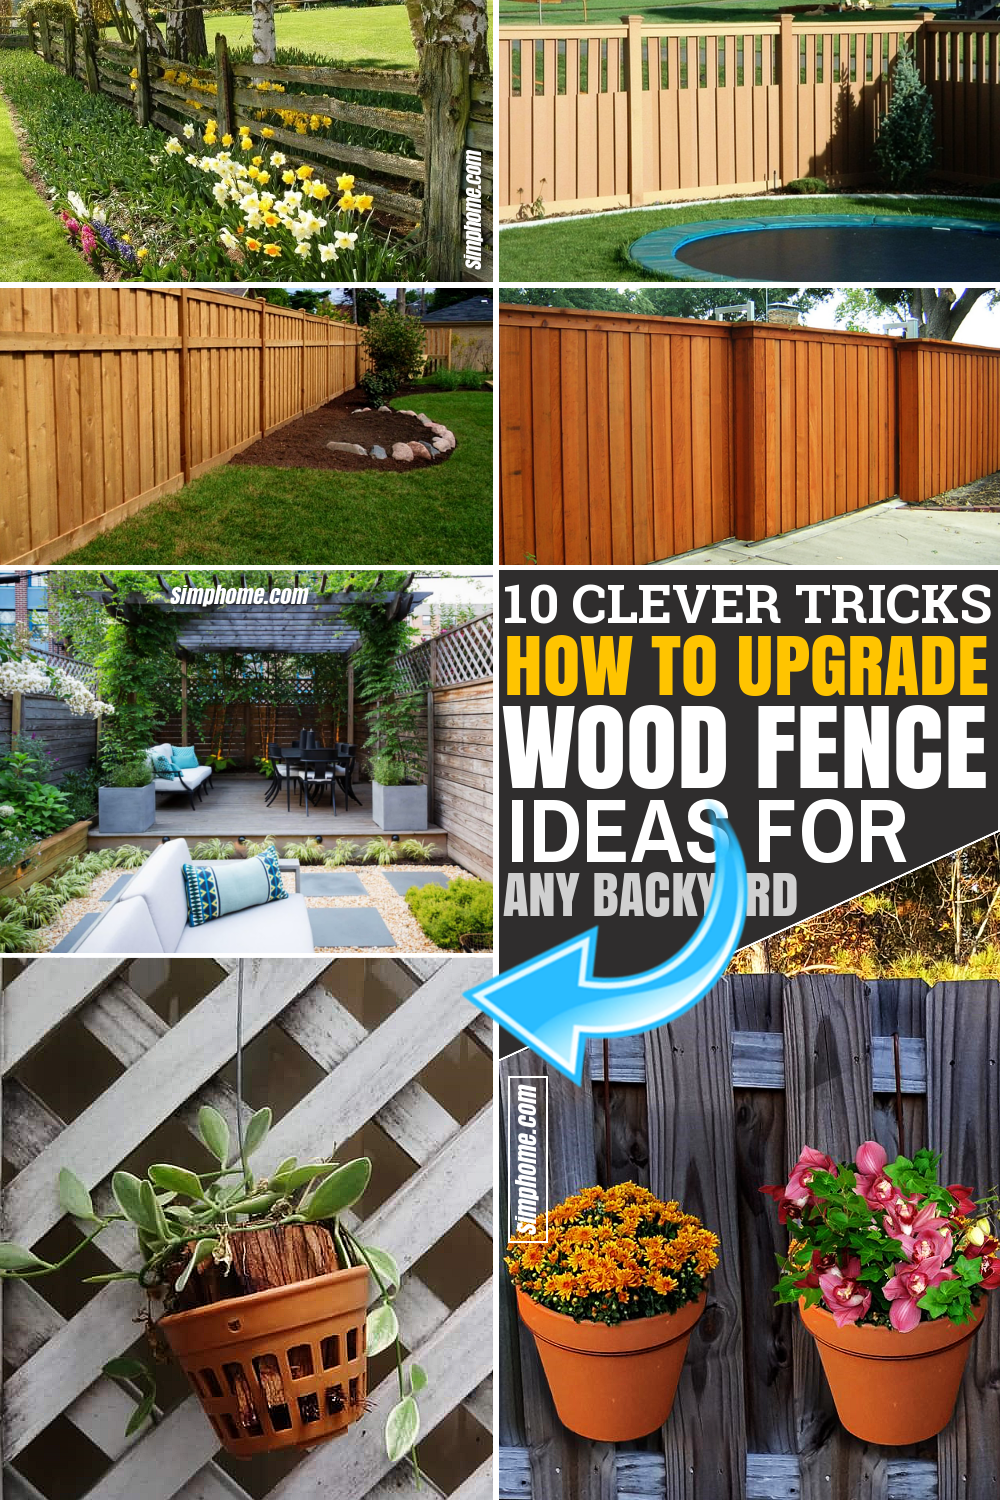 SIMPHOME.COM 10 Tricks How to Upgrade Wood Fence Ideas for Backyard Featured Pinterest